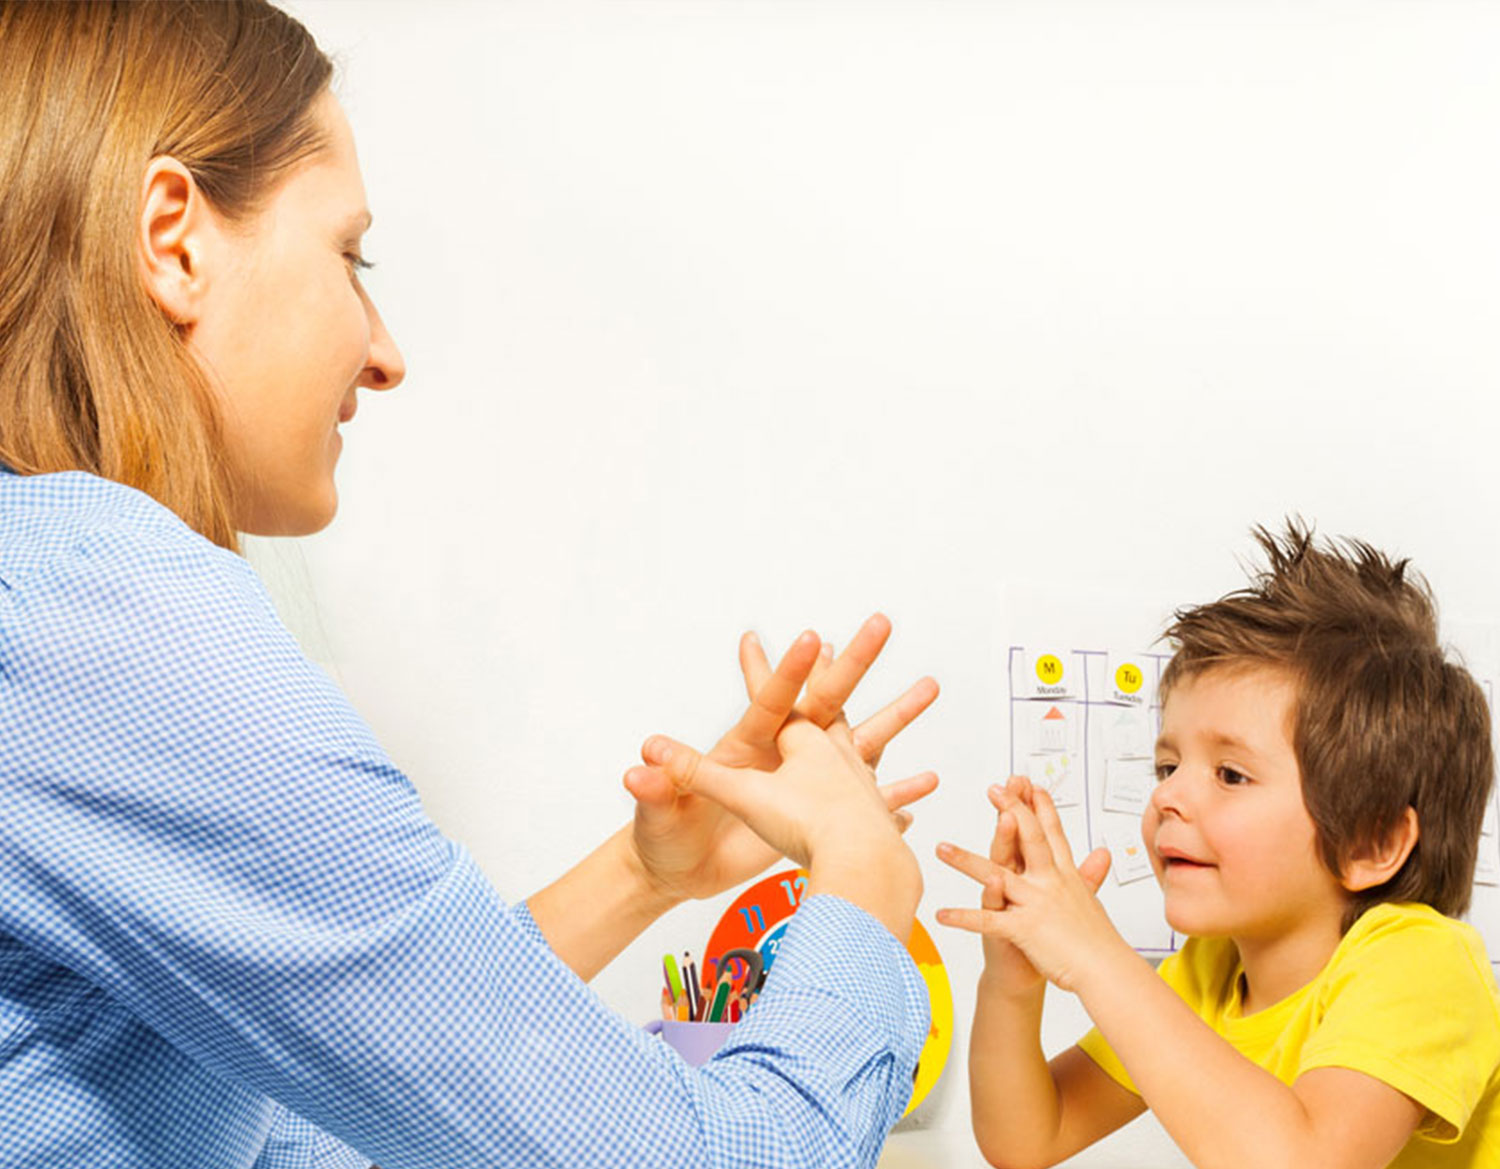 therapist working with boy